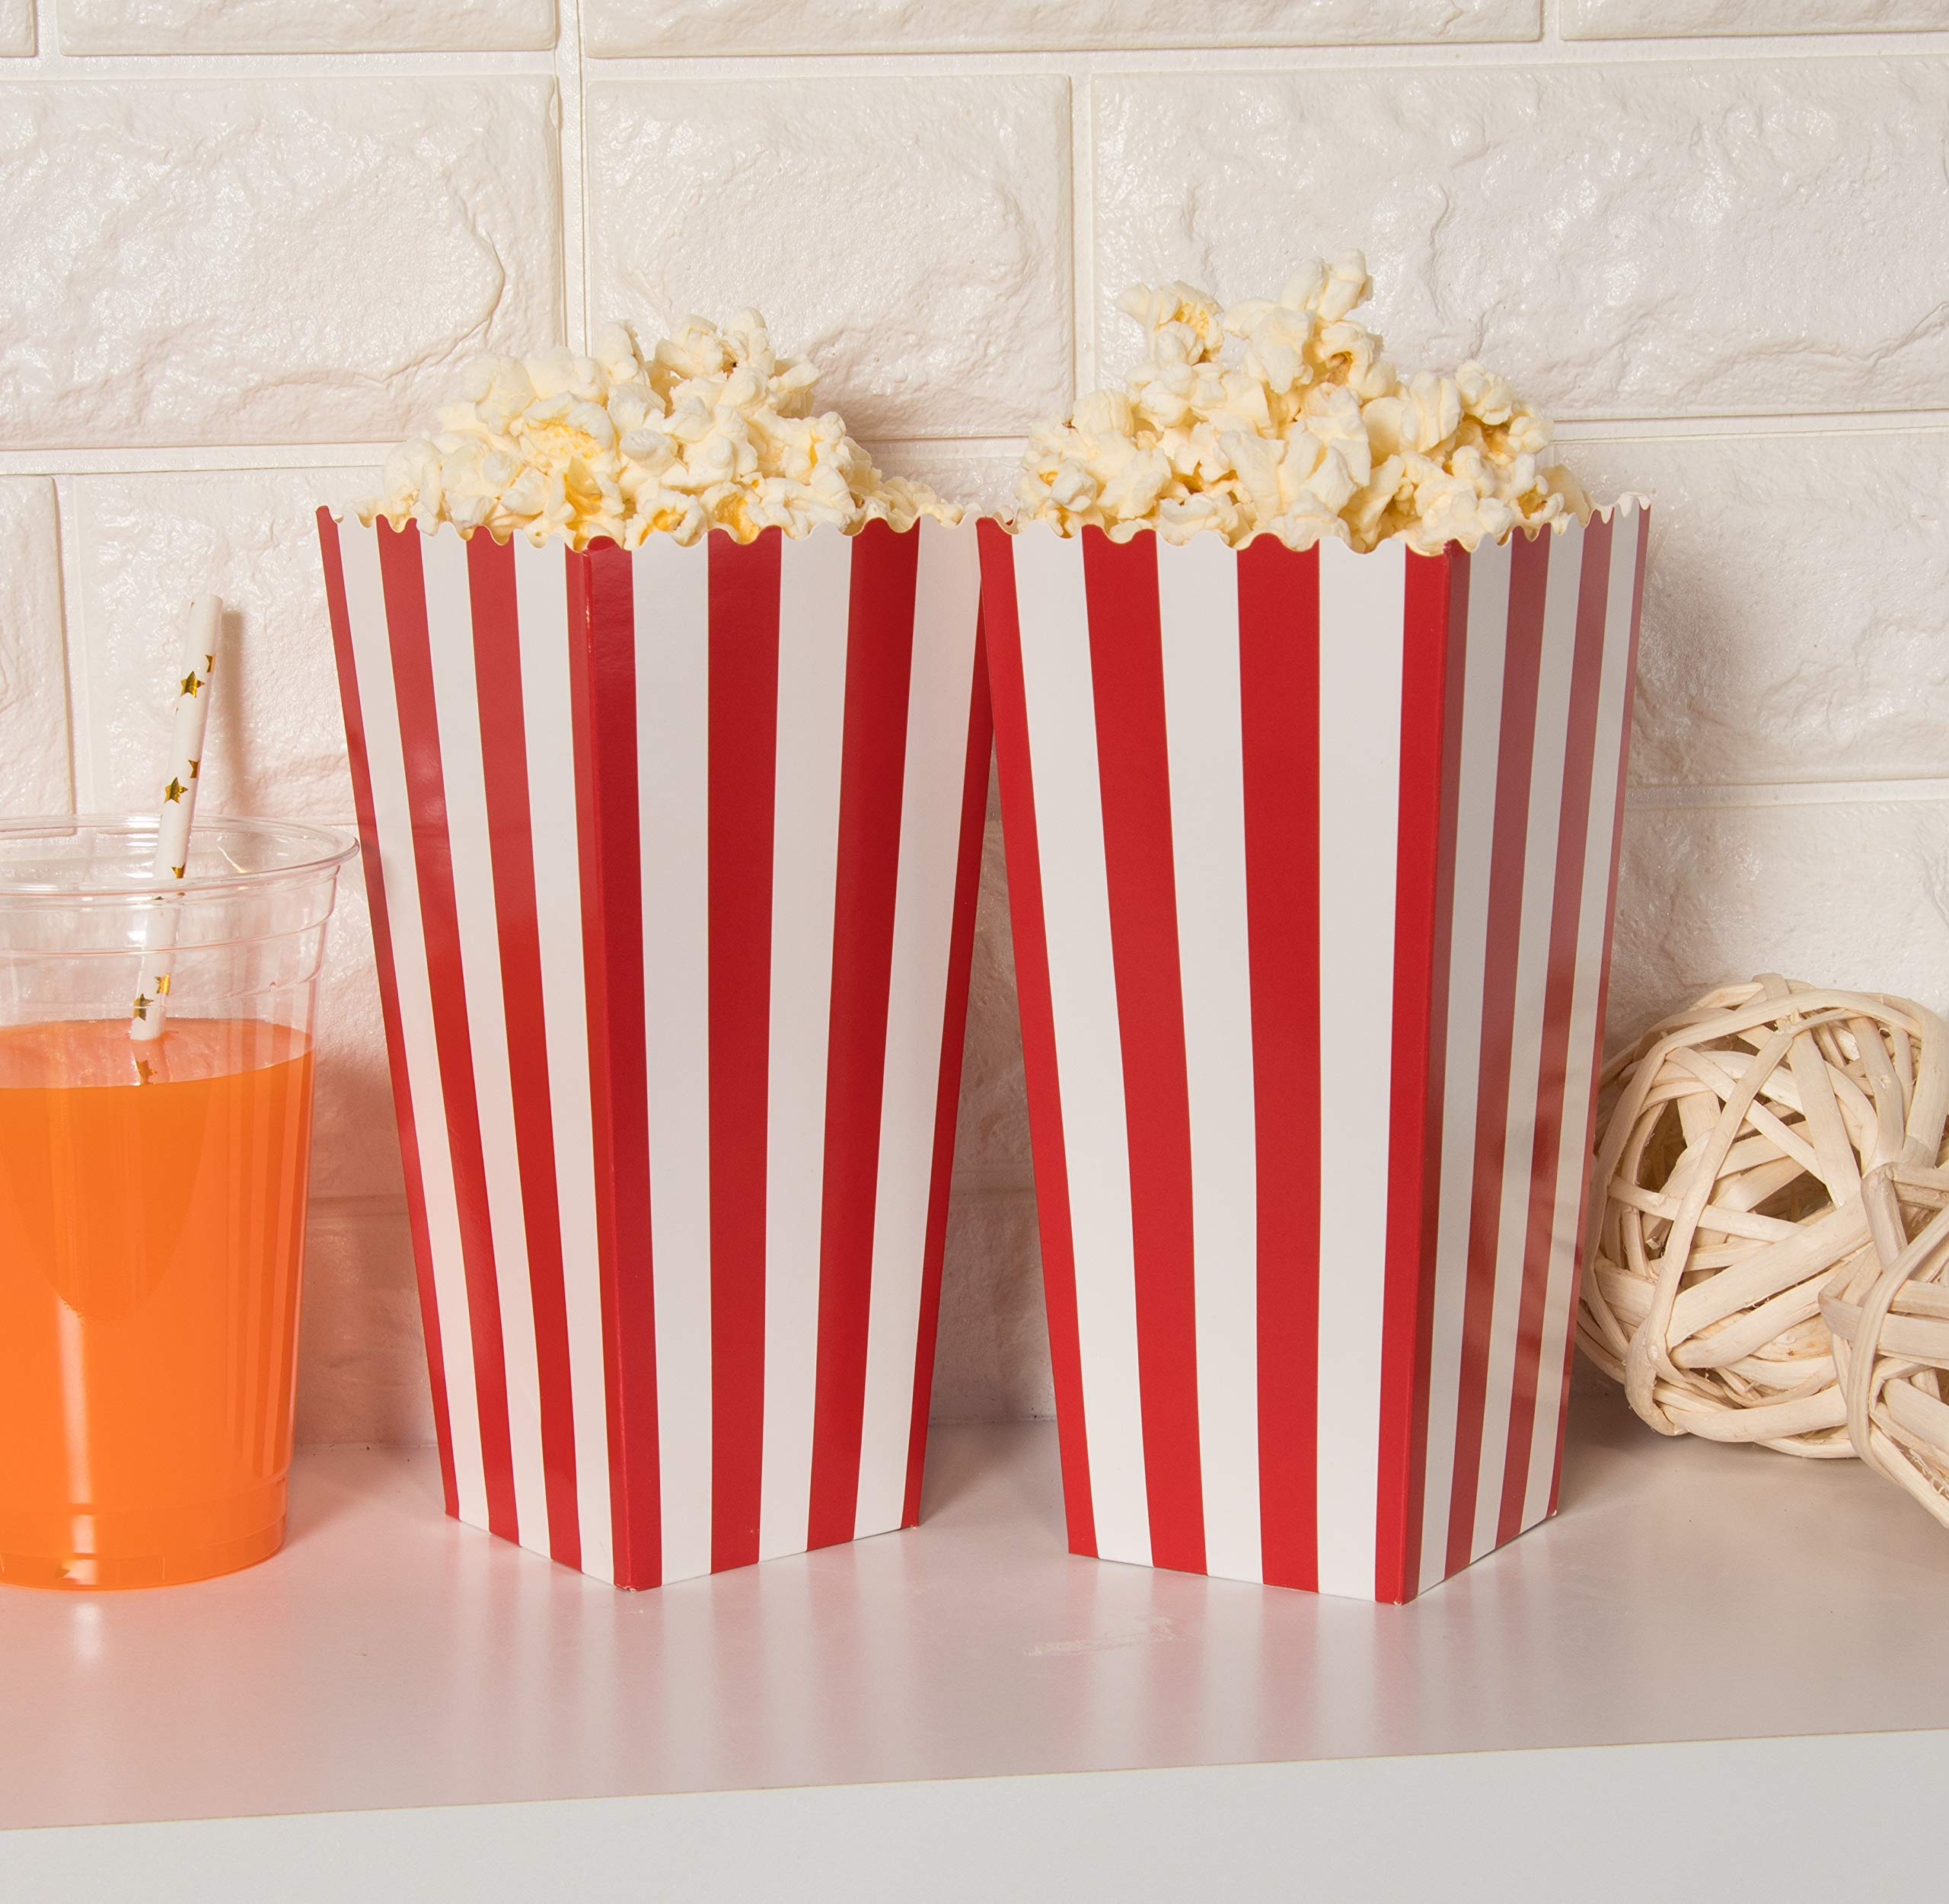 Set of 100 Popcorn Favor Boxes - Paper Popcorn Containers, Popcorn Party Supplies for Movie Nights, Movie-Themed Parties, Carnival Parties, Pirate Party, Red and White - 3.7 x 7.8 x 3.7 Inches by Blue Panda (Image #2)